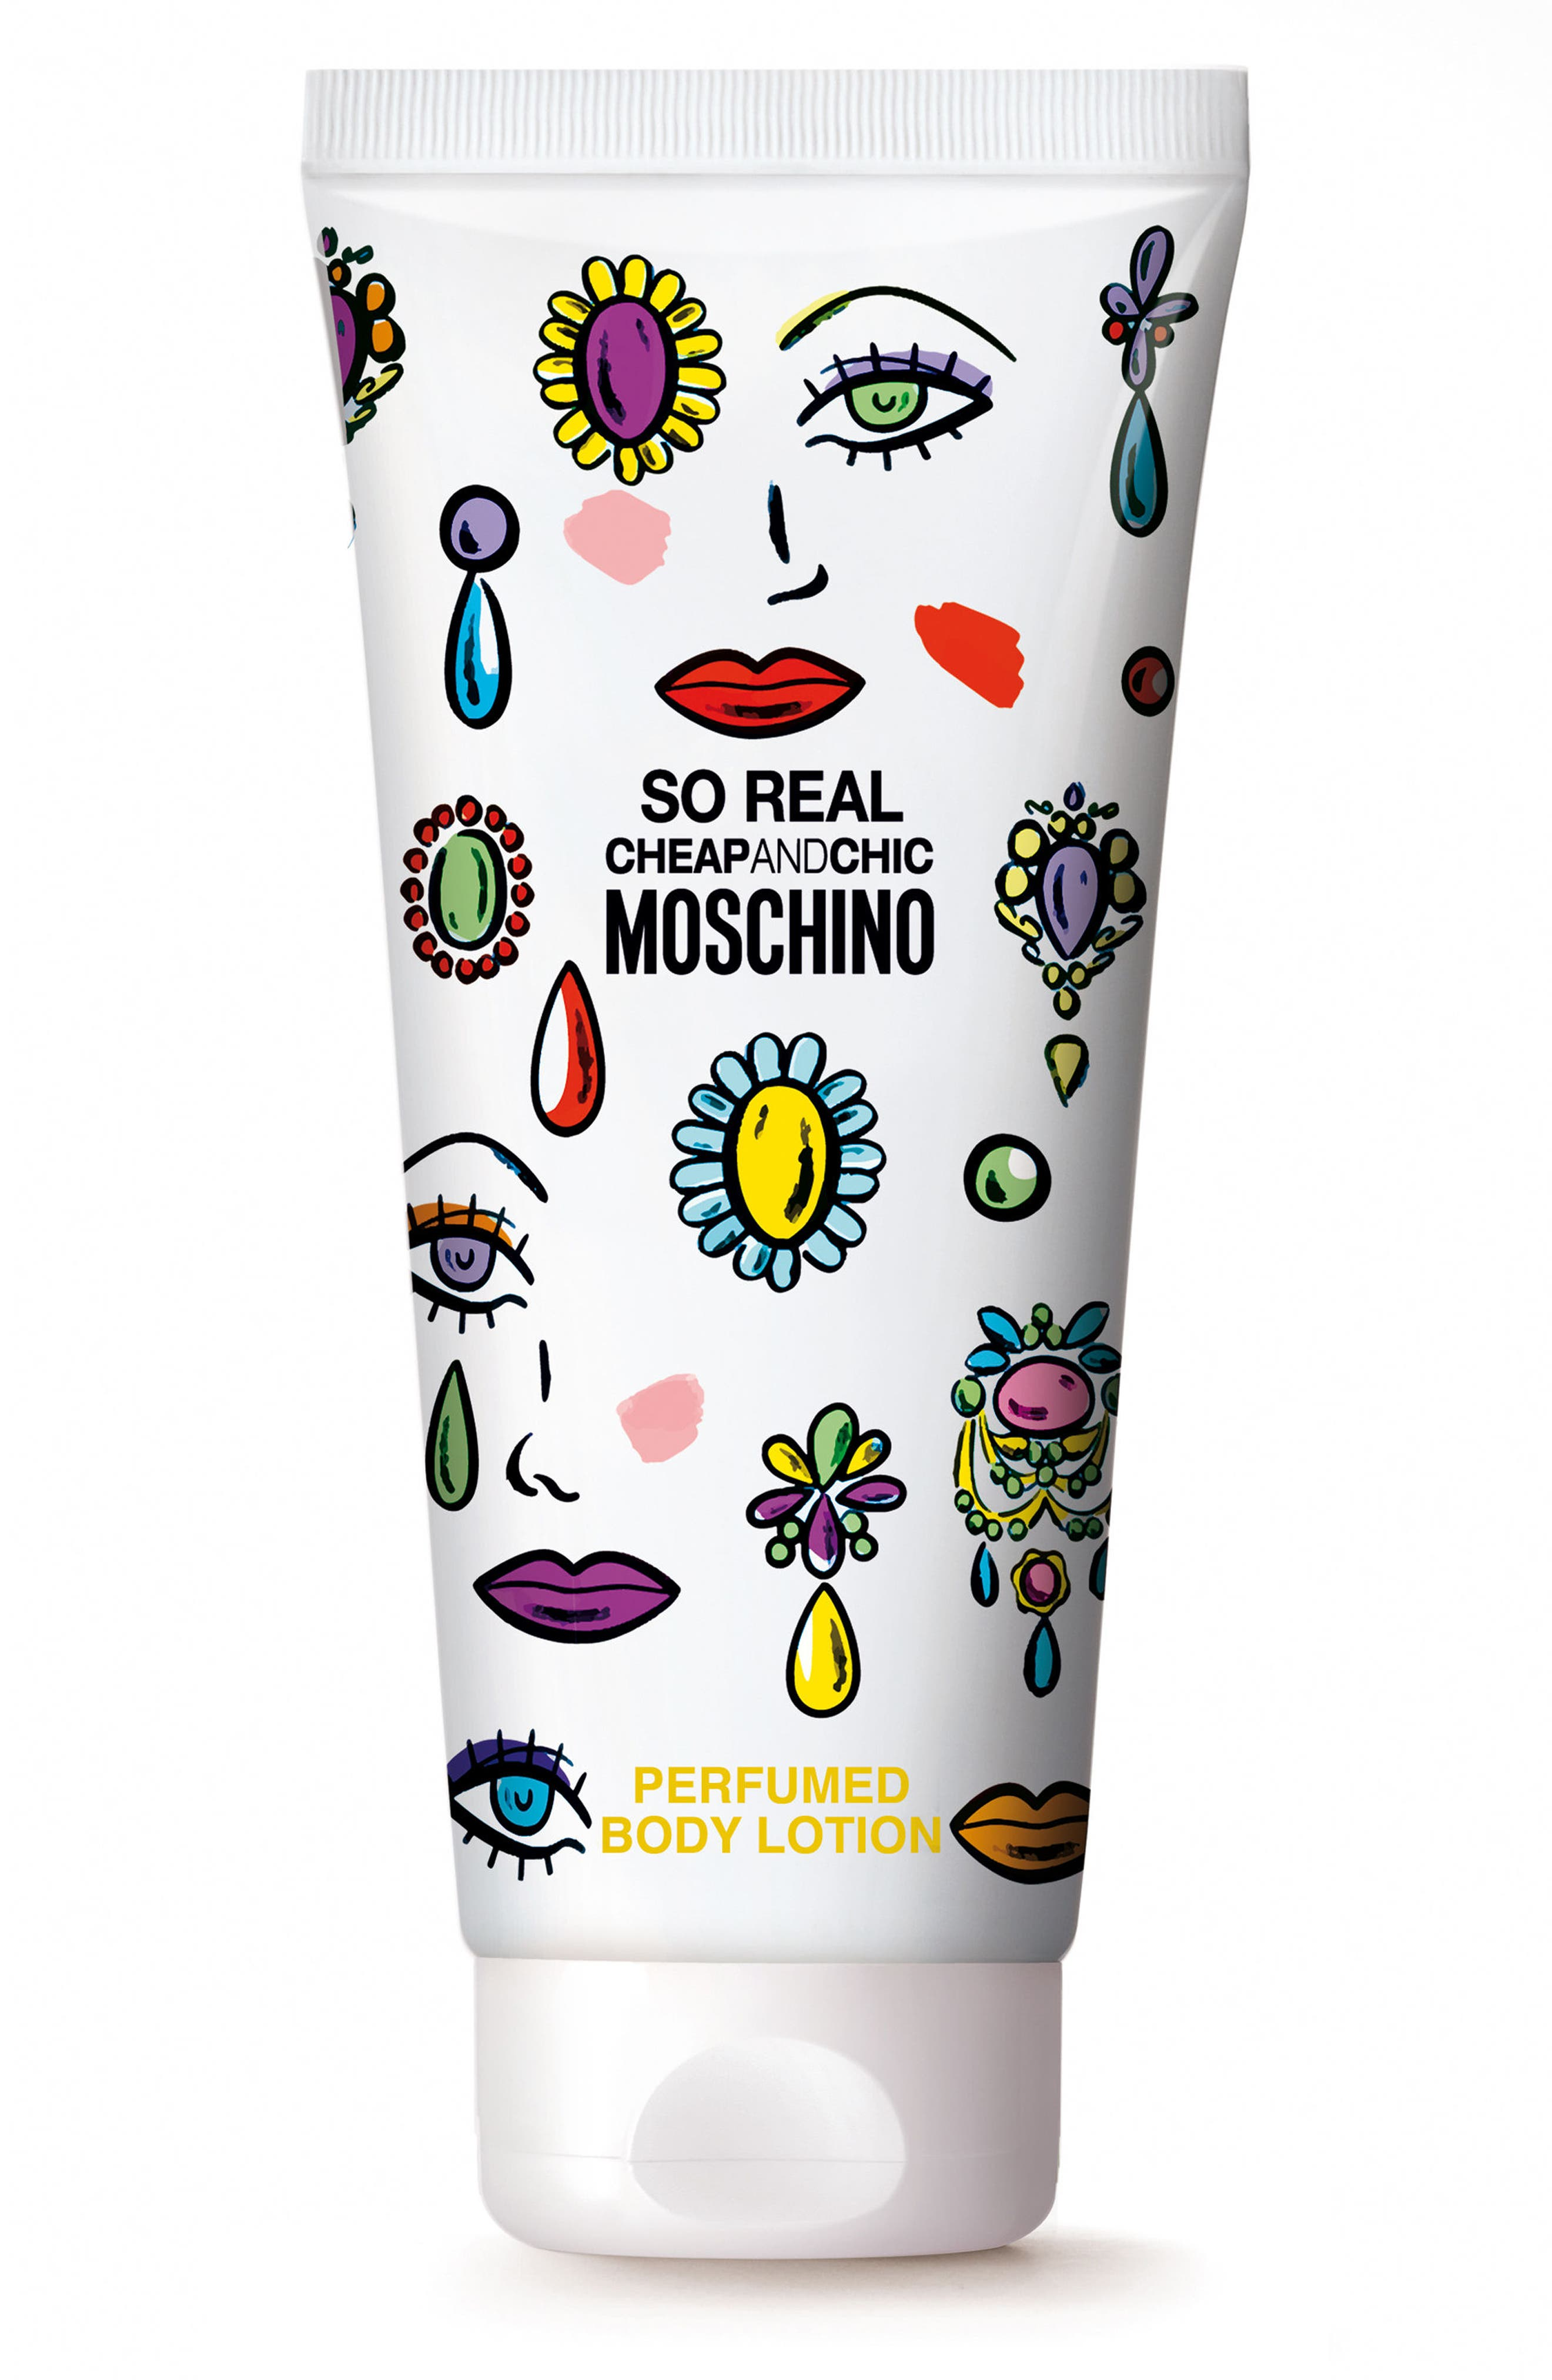 Moschino So Real Cheap and Chic Perfumed Body Lotion